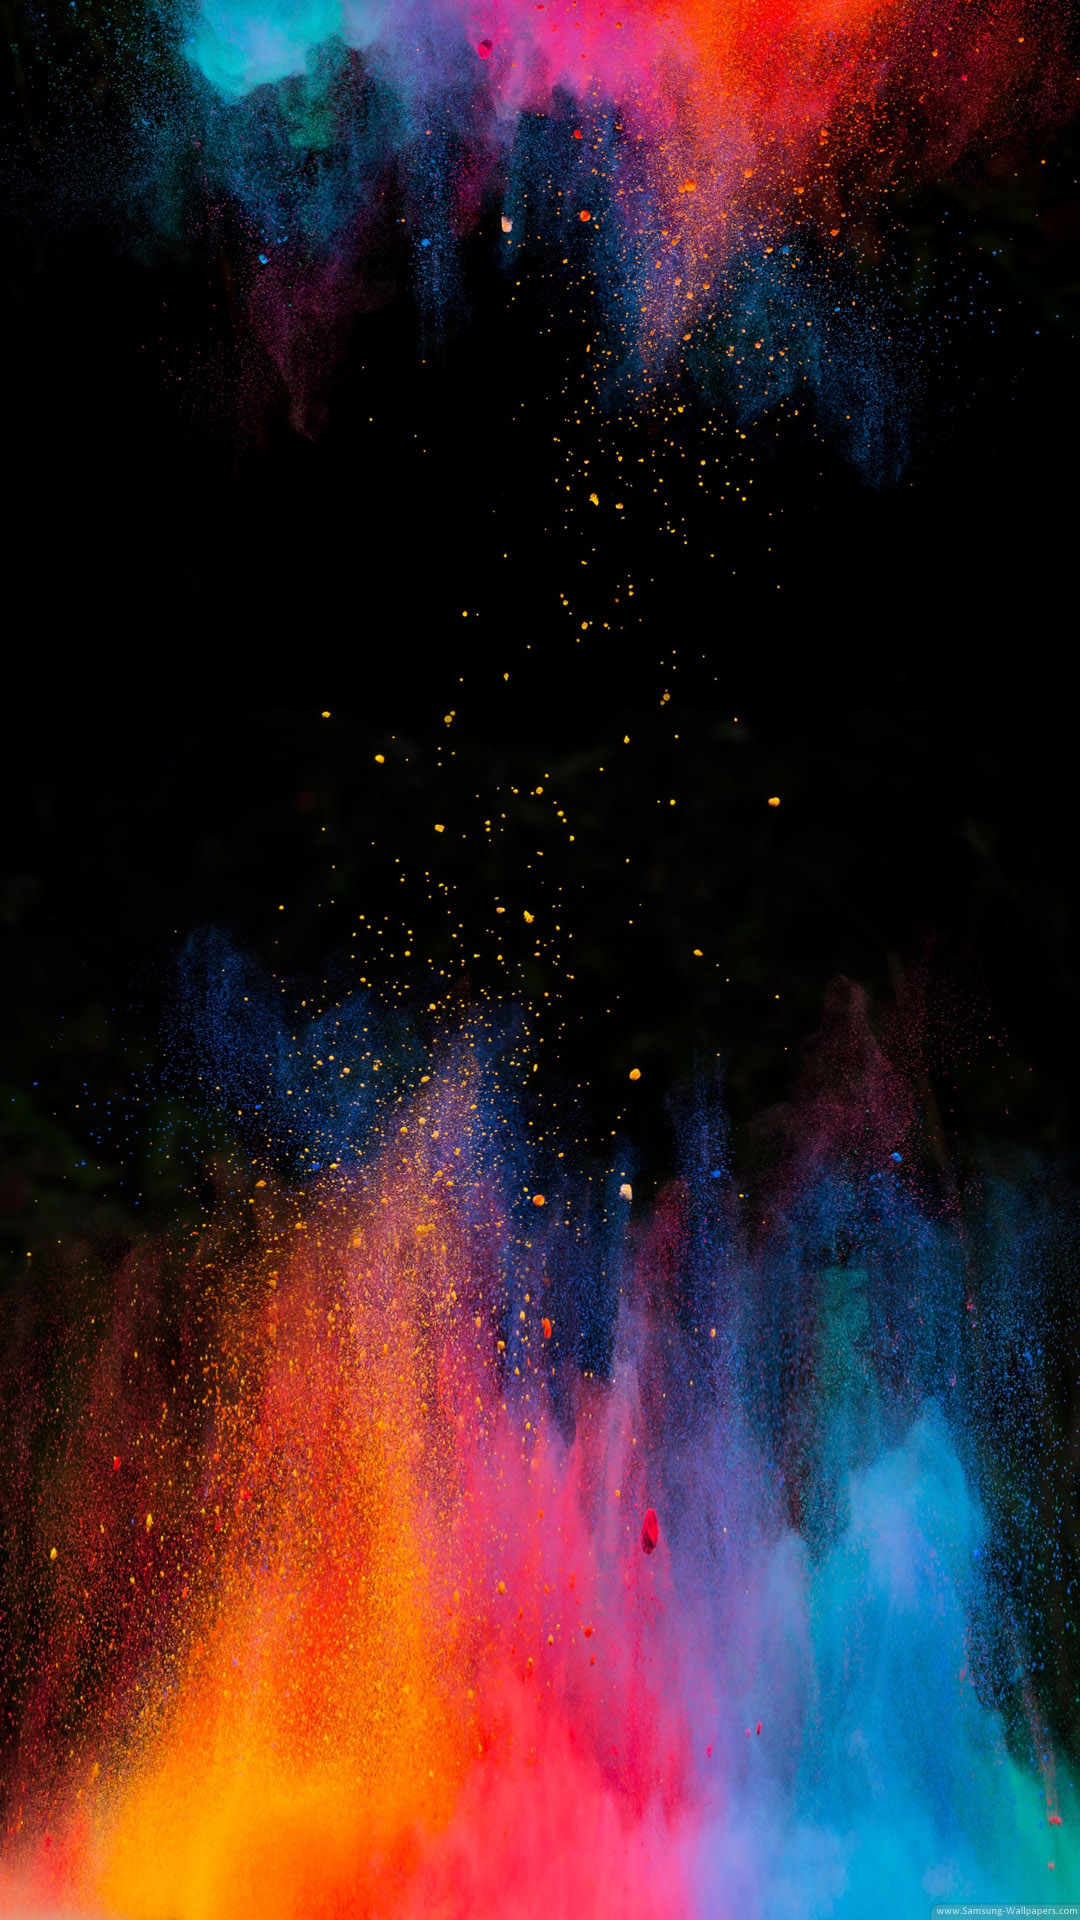 How To Get Live Wallpapers On Iphone 5 Download Color Explosion Wallpaper Gallery